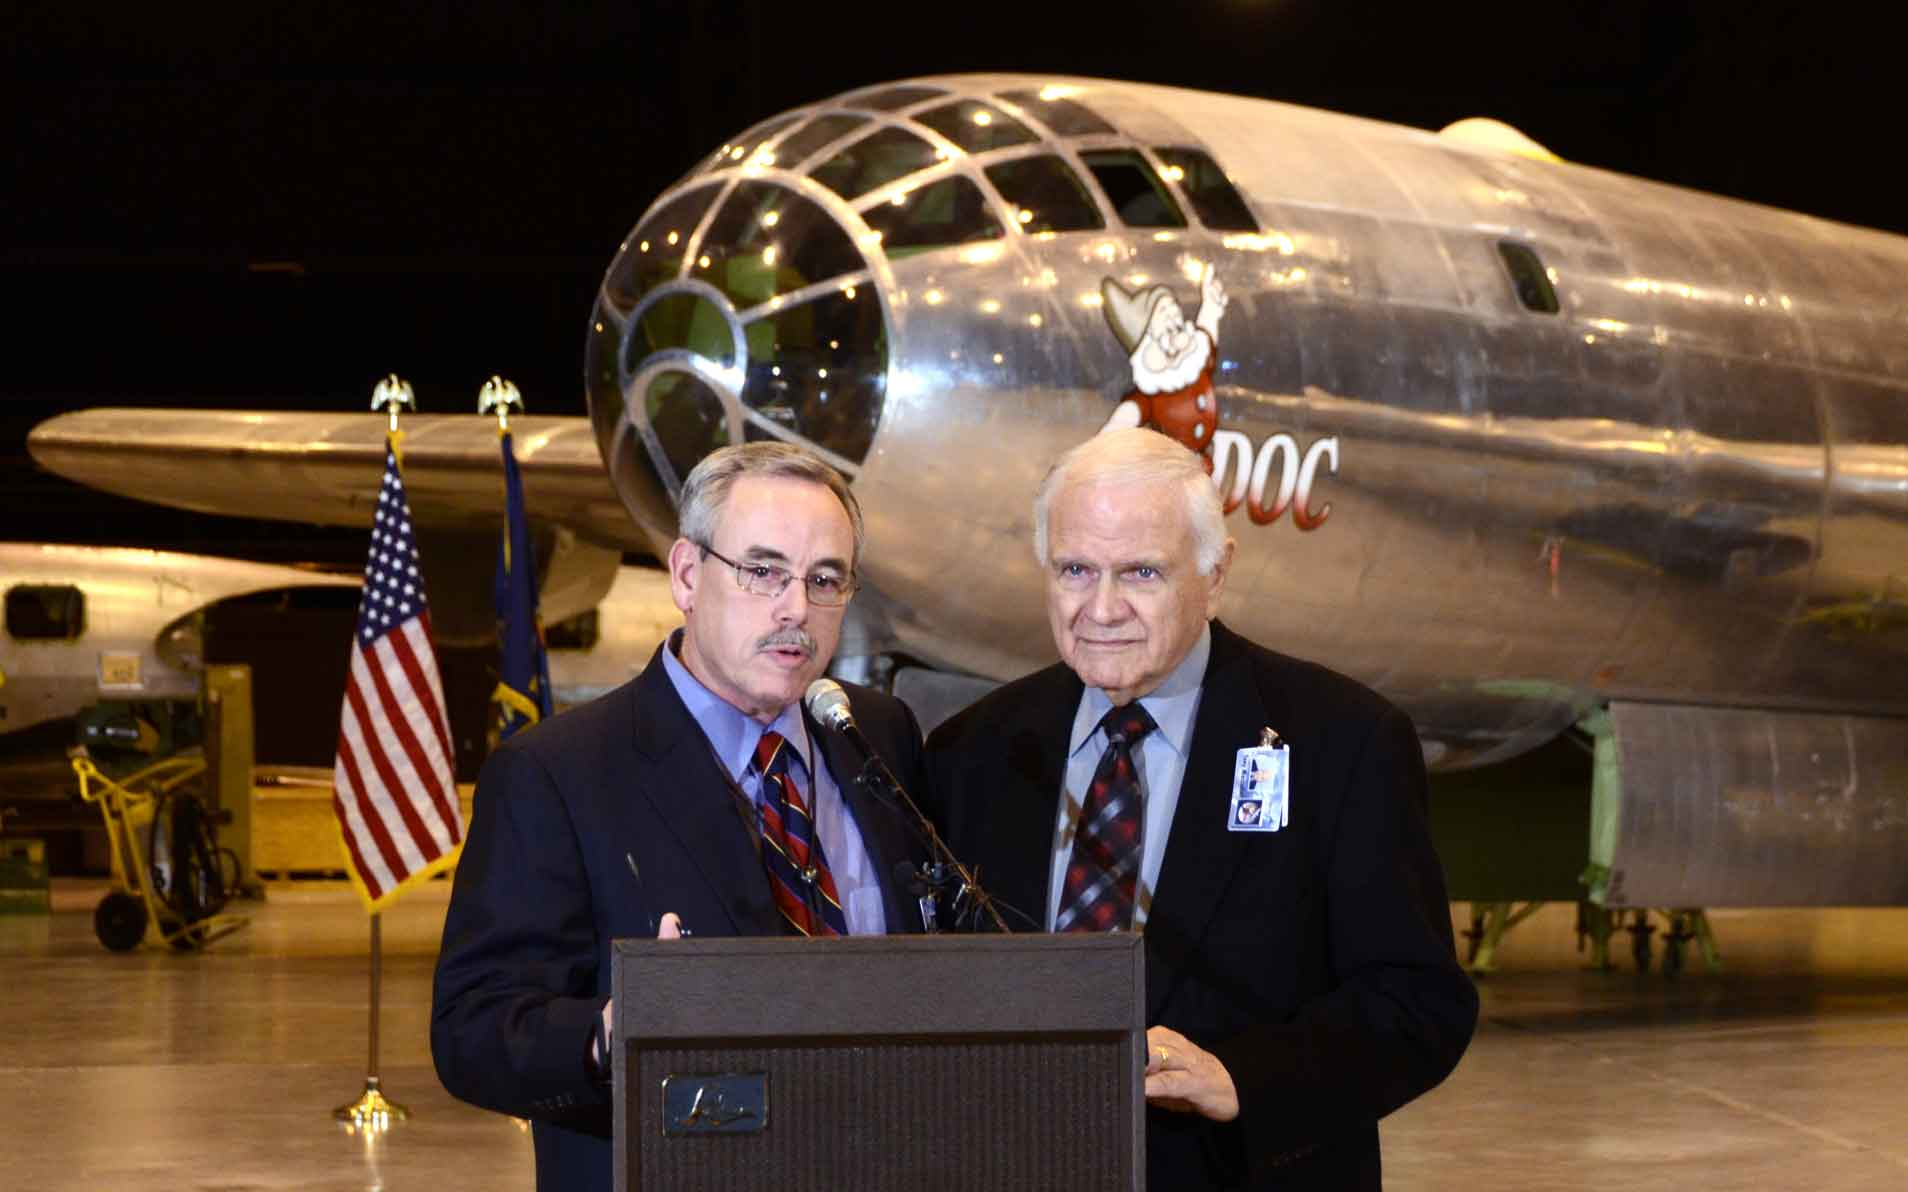 Wichita Business Leaders Take the B-29 Doc Under Their Wing